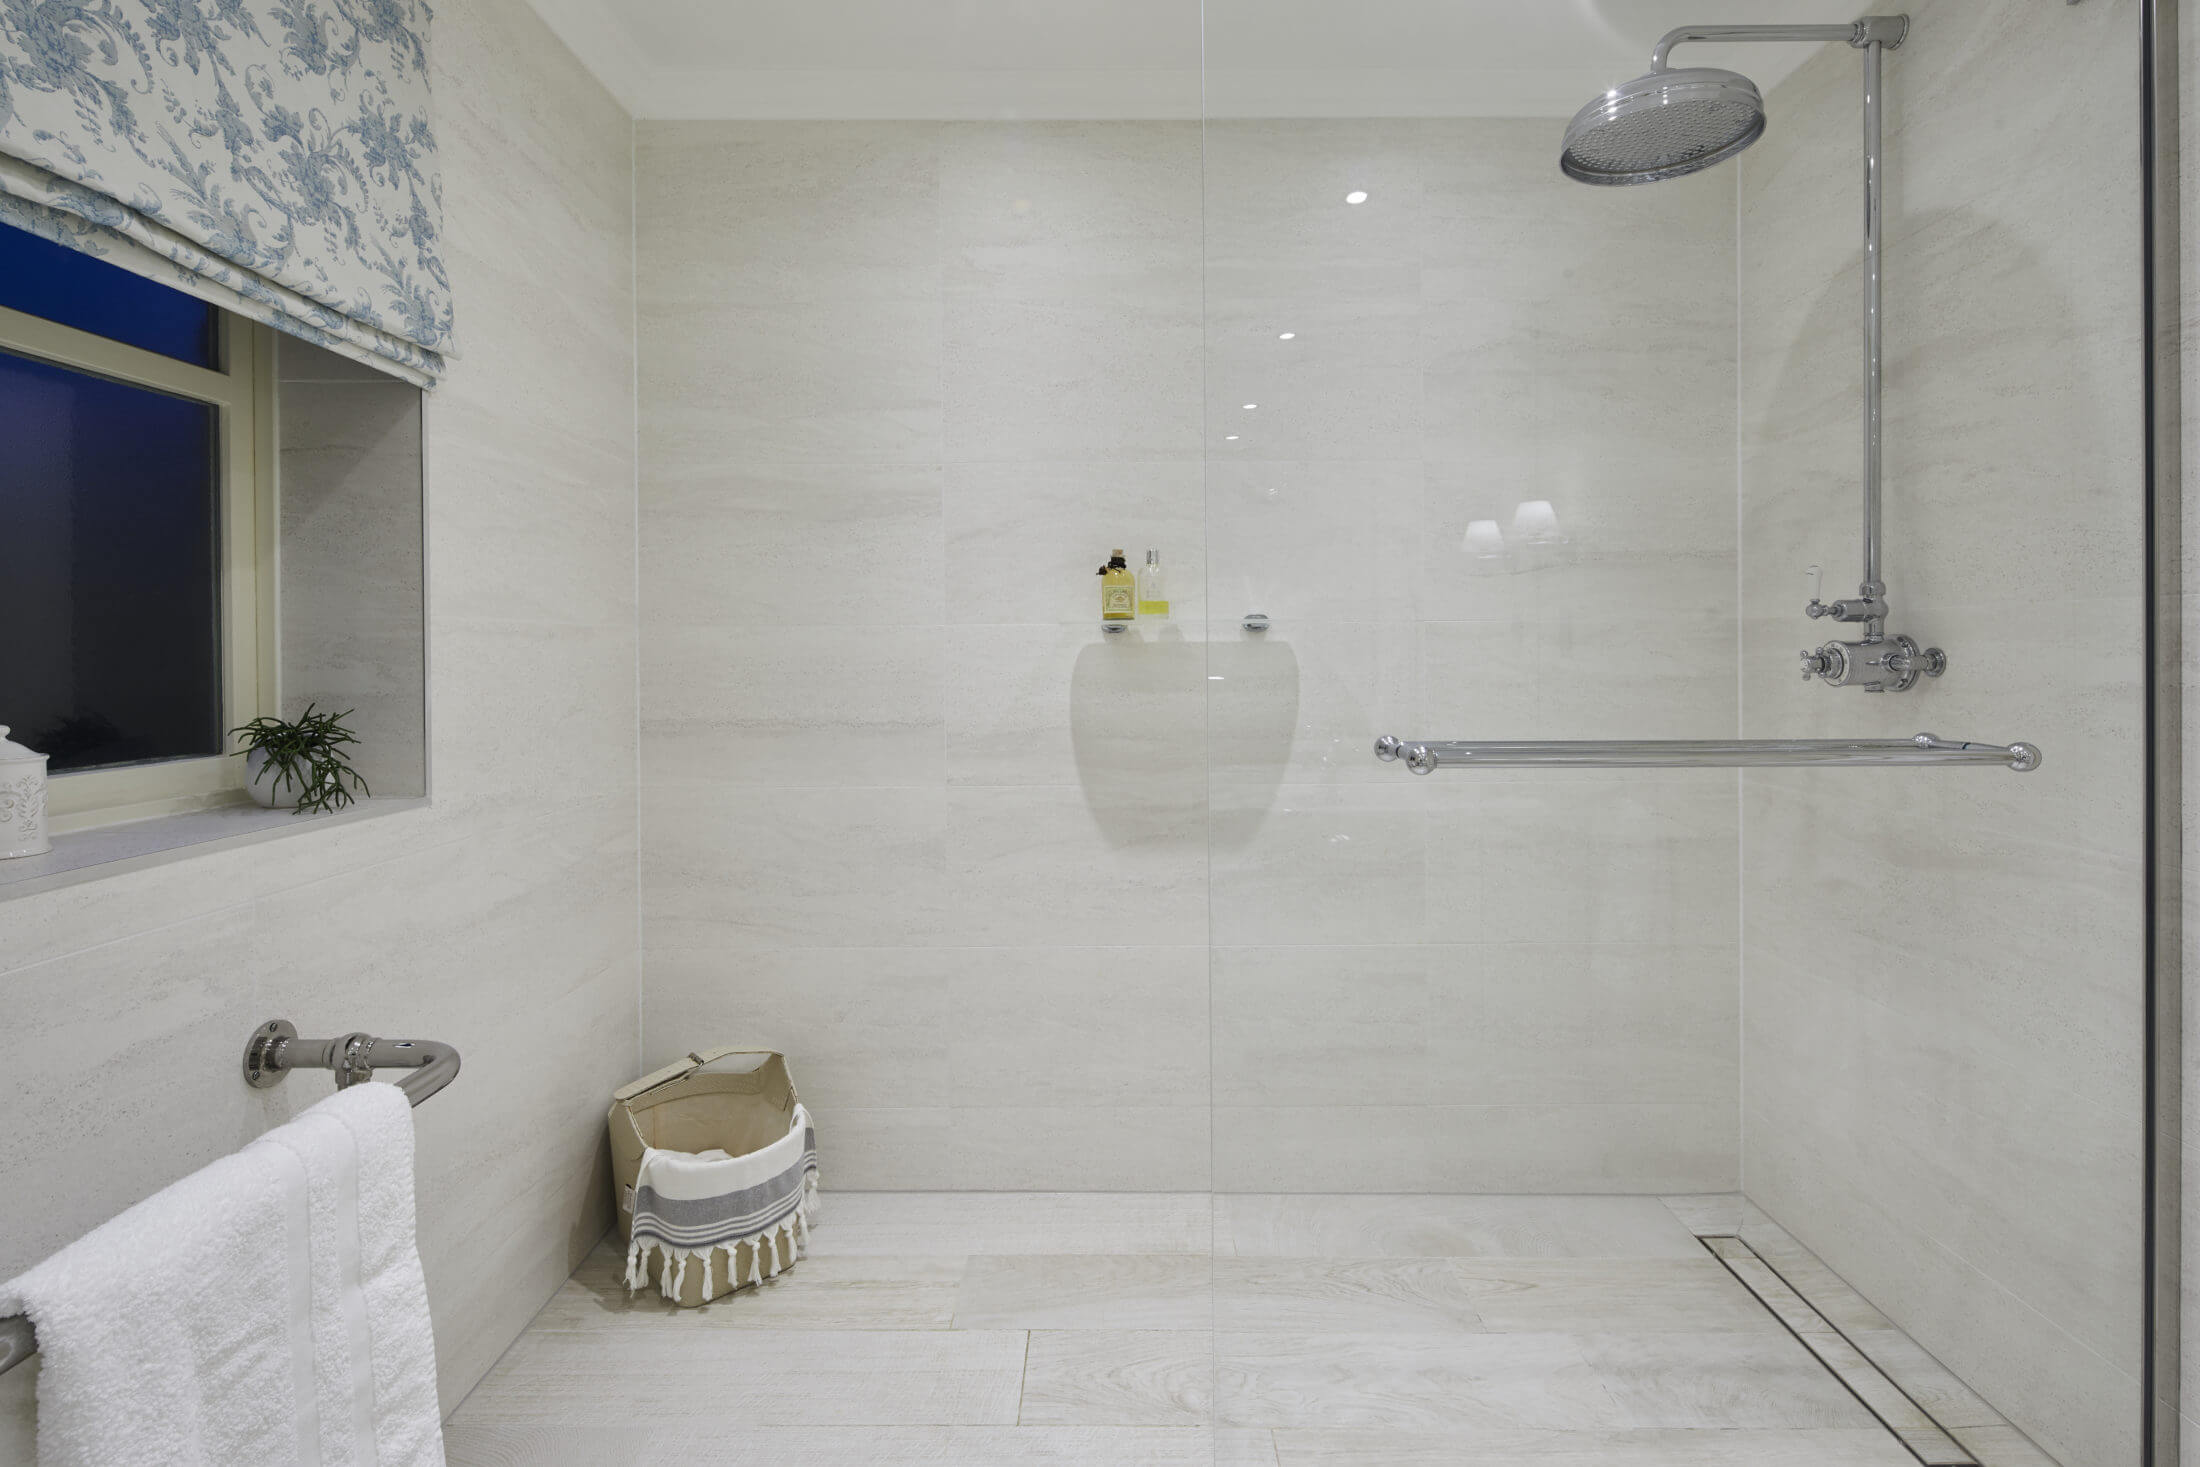 Wetroom in Walton-on-Thames